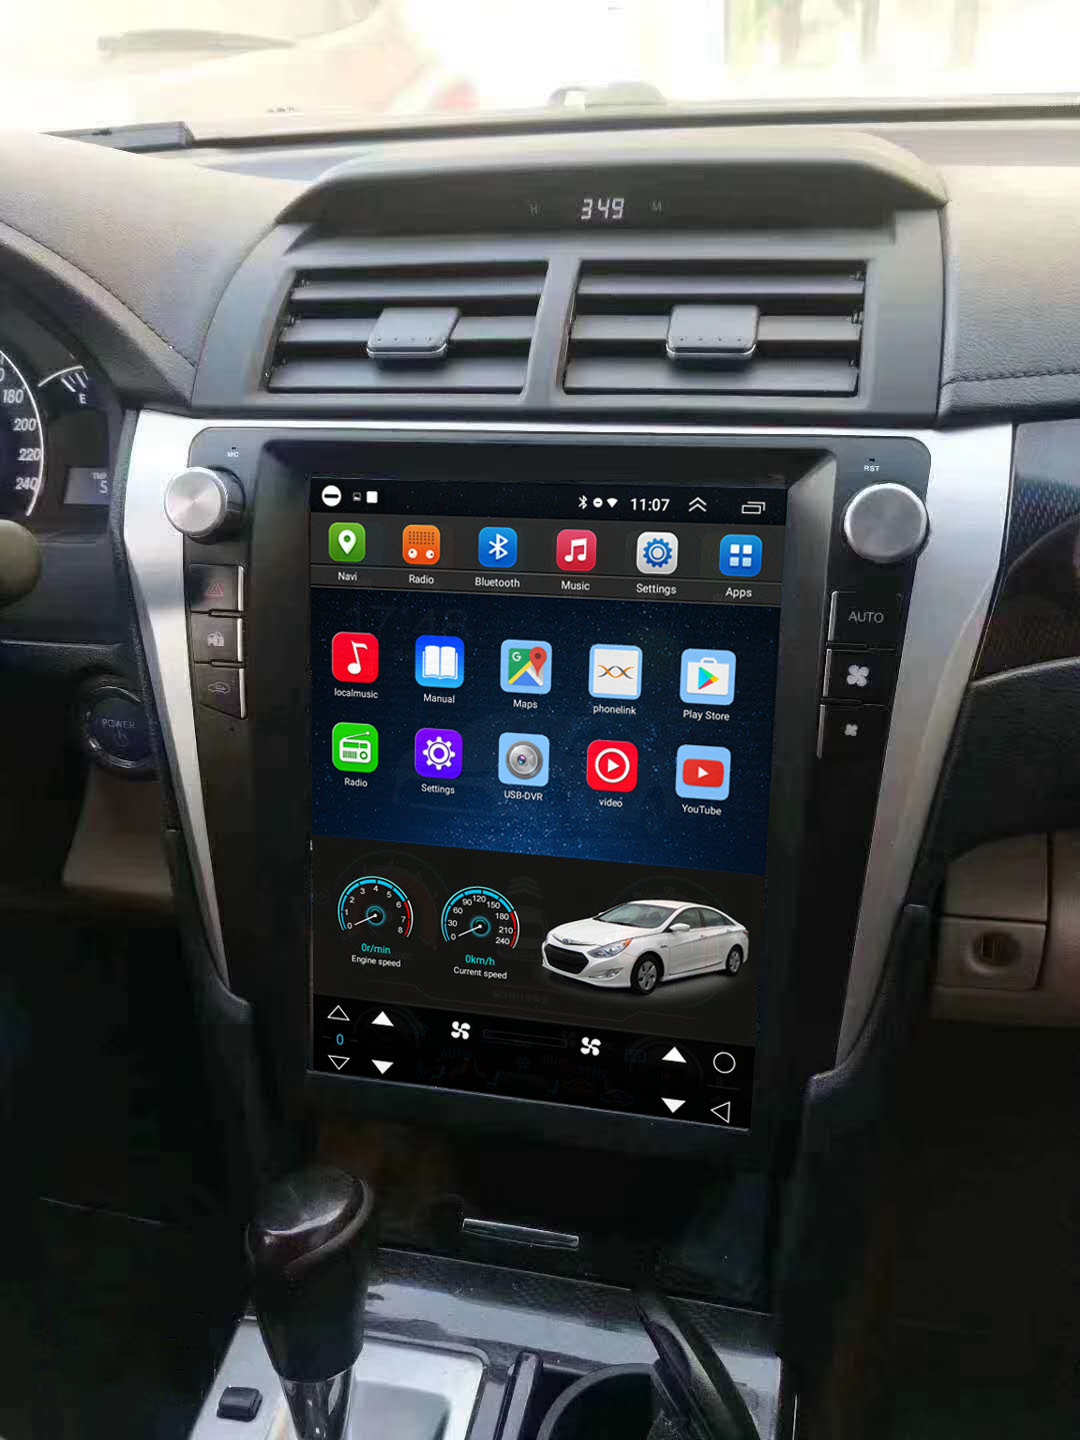 Tesla Style 12.1 Inch Android Car Multimedia Navigation For Toyota Camry 2012-2015